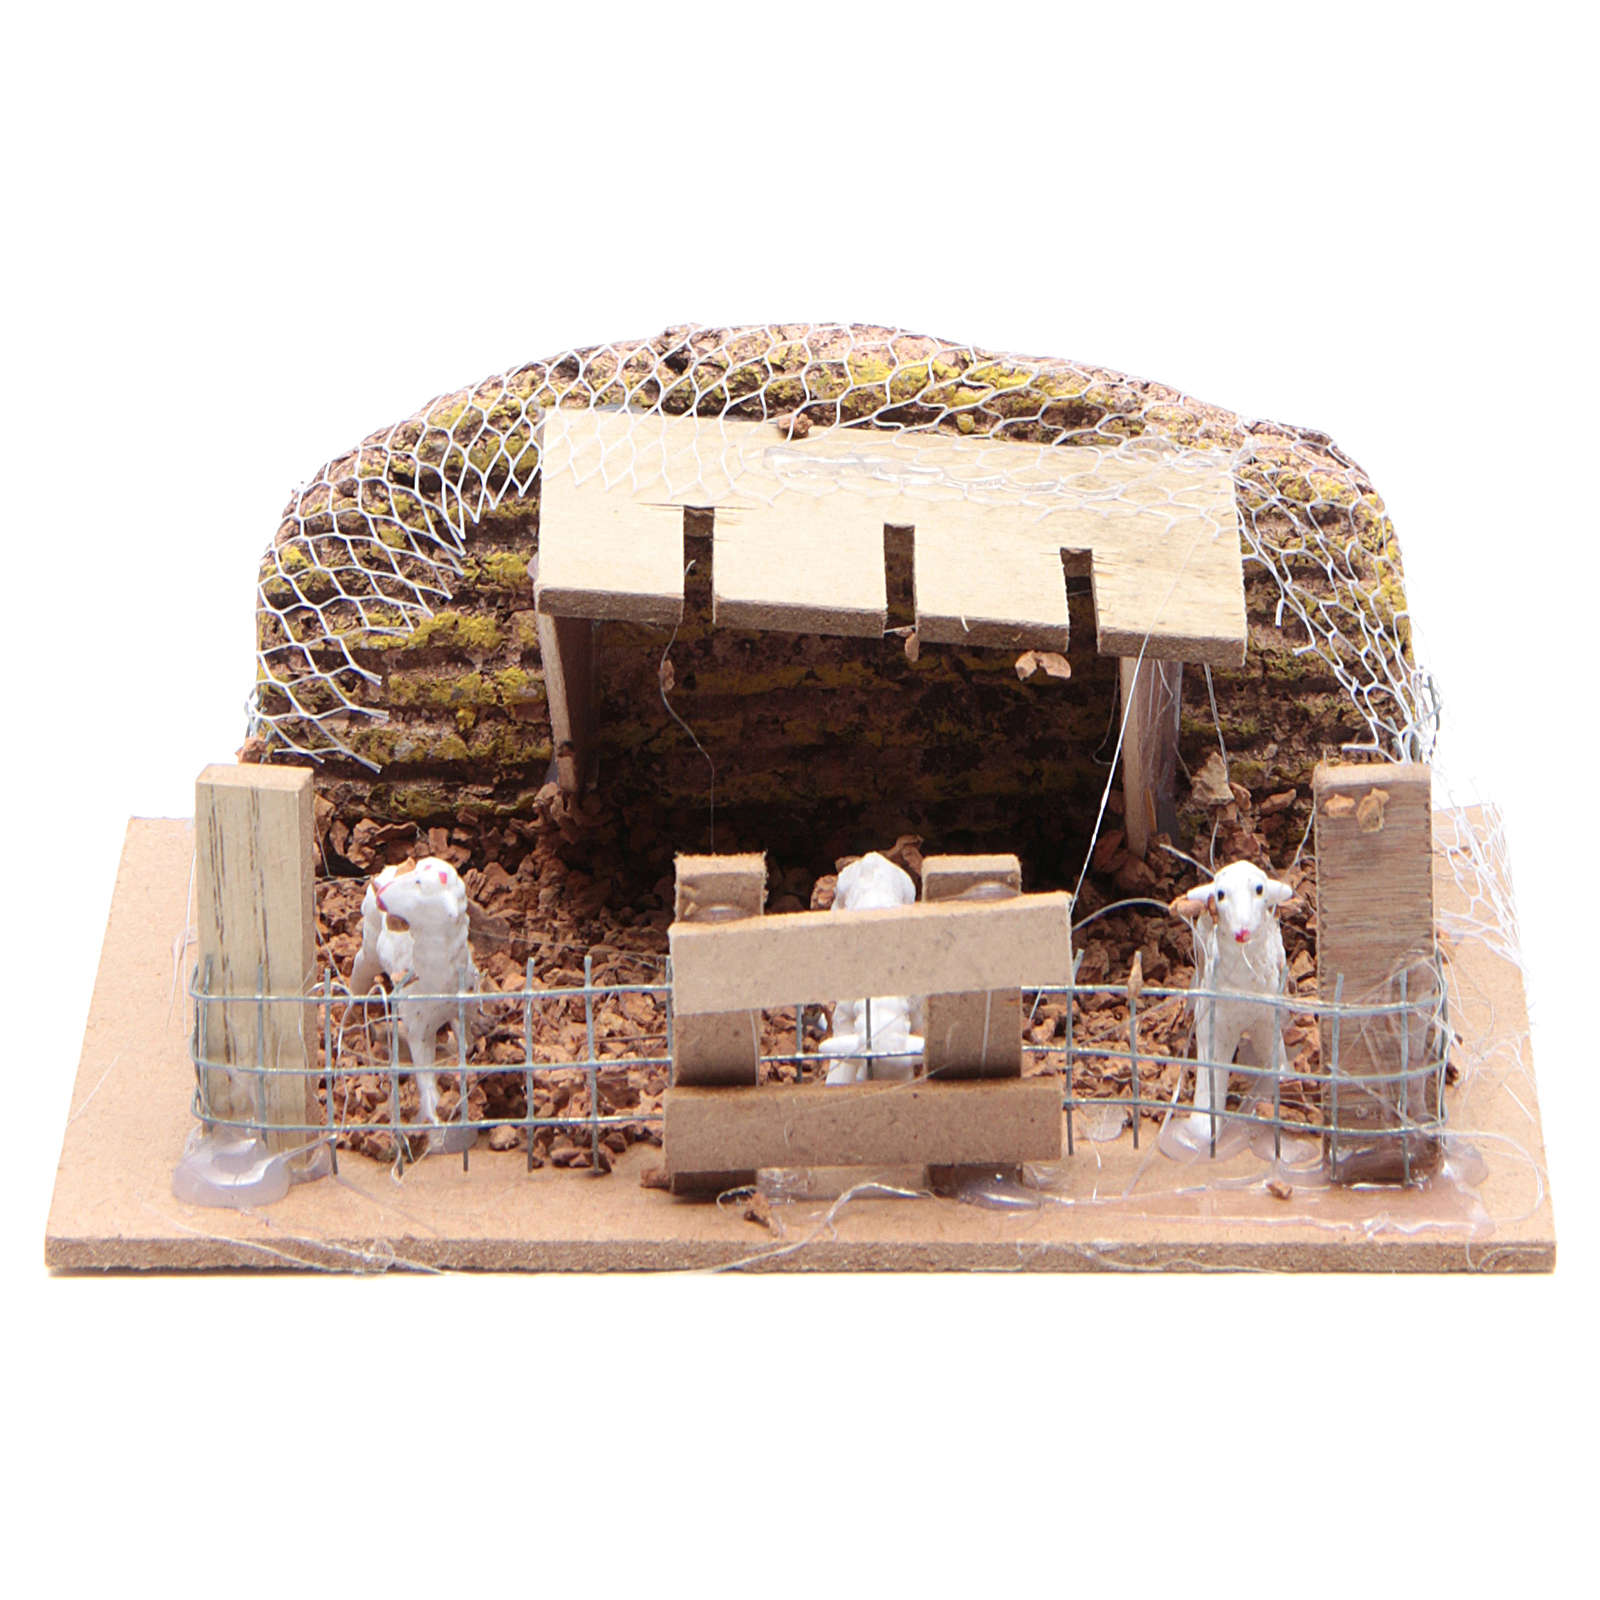 Sheep corral with sheep 6x14.5x11cm, nativity setting 3